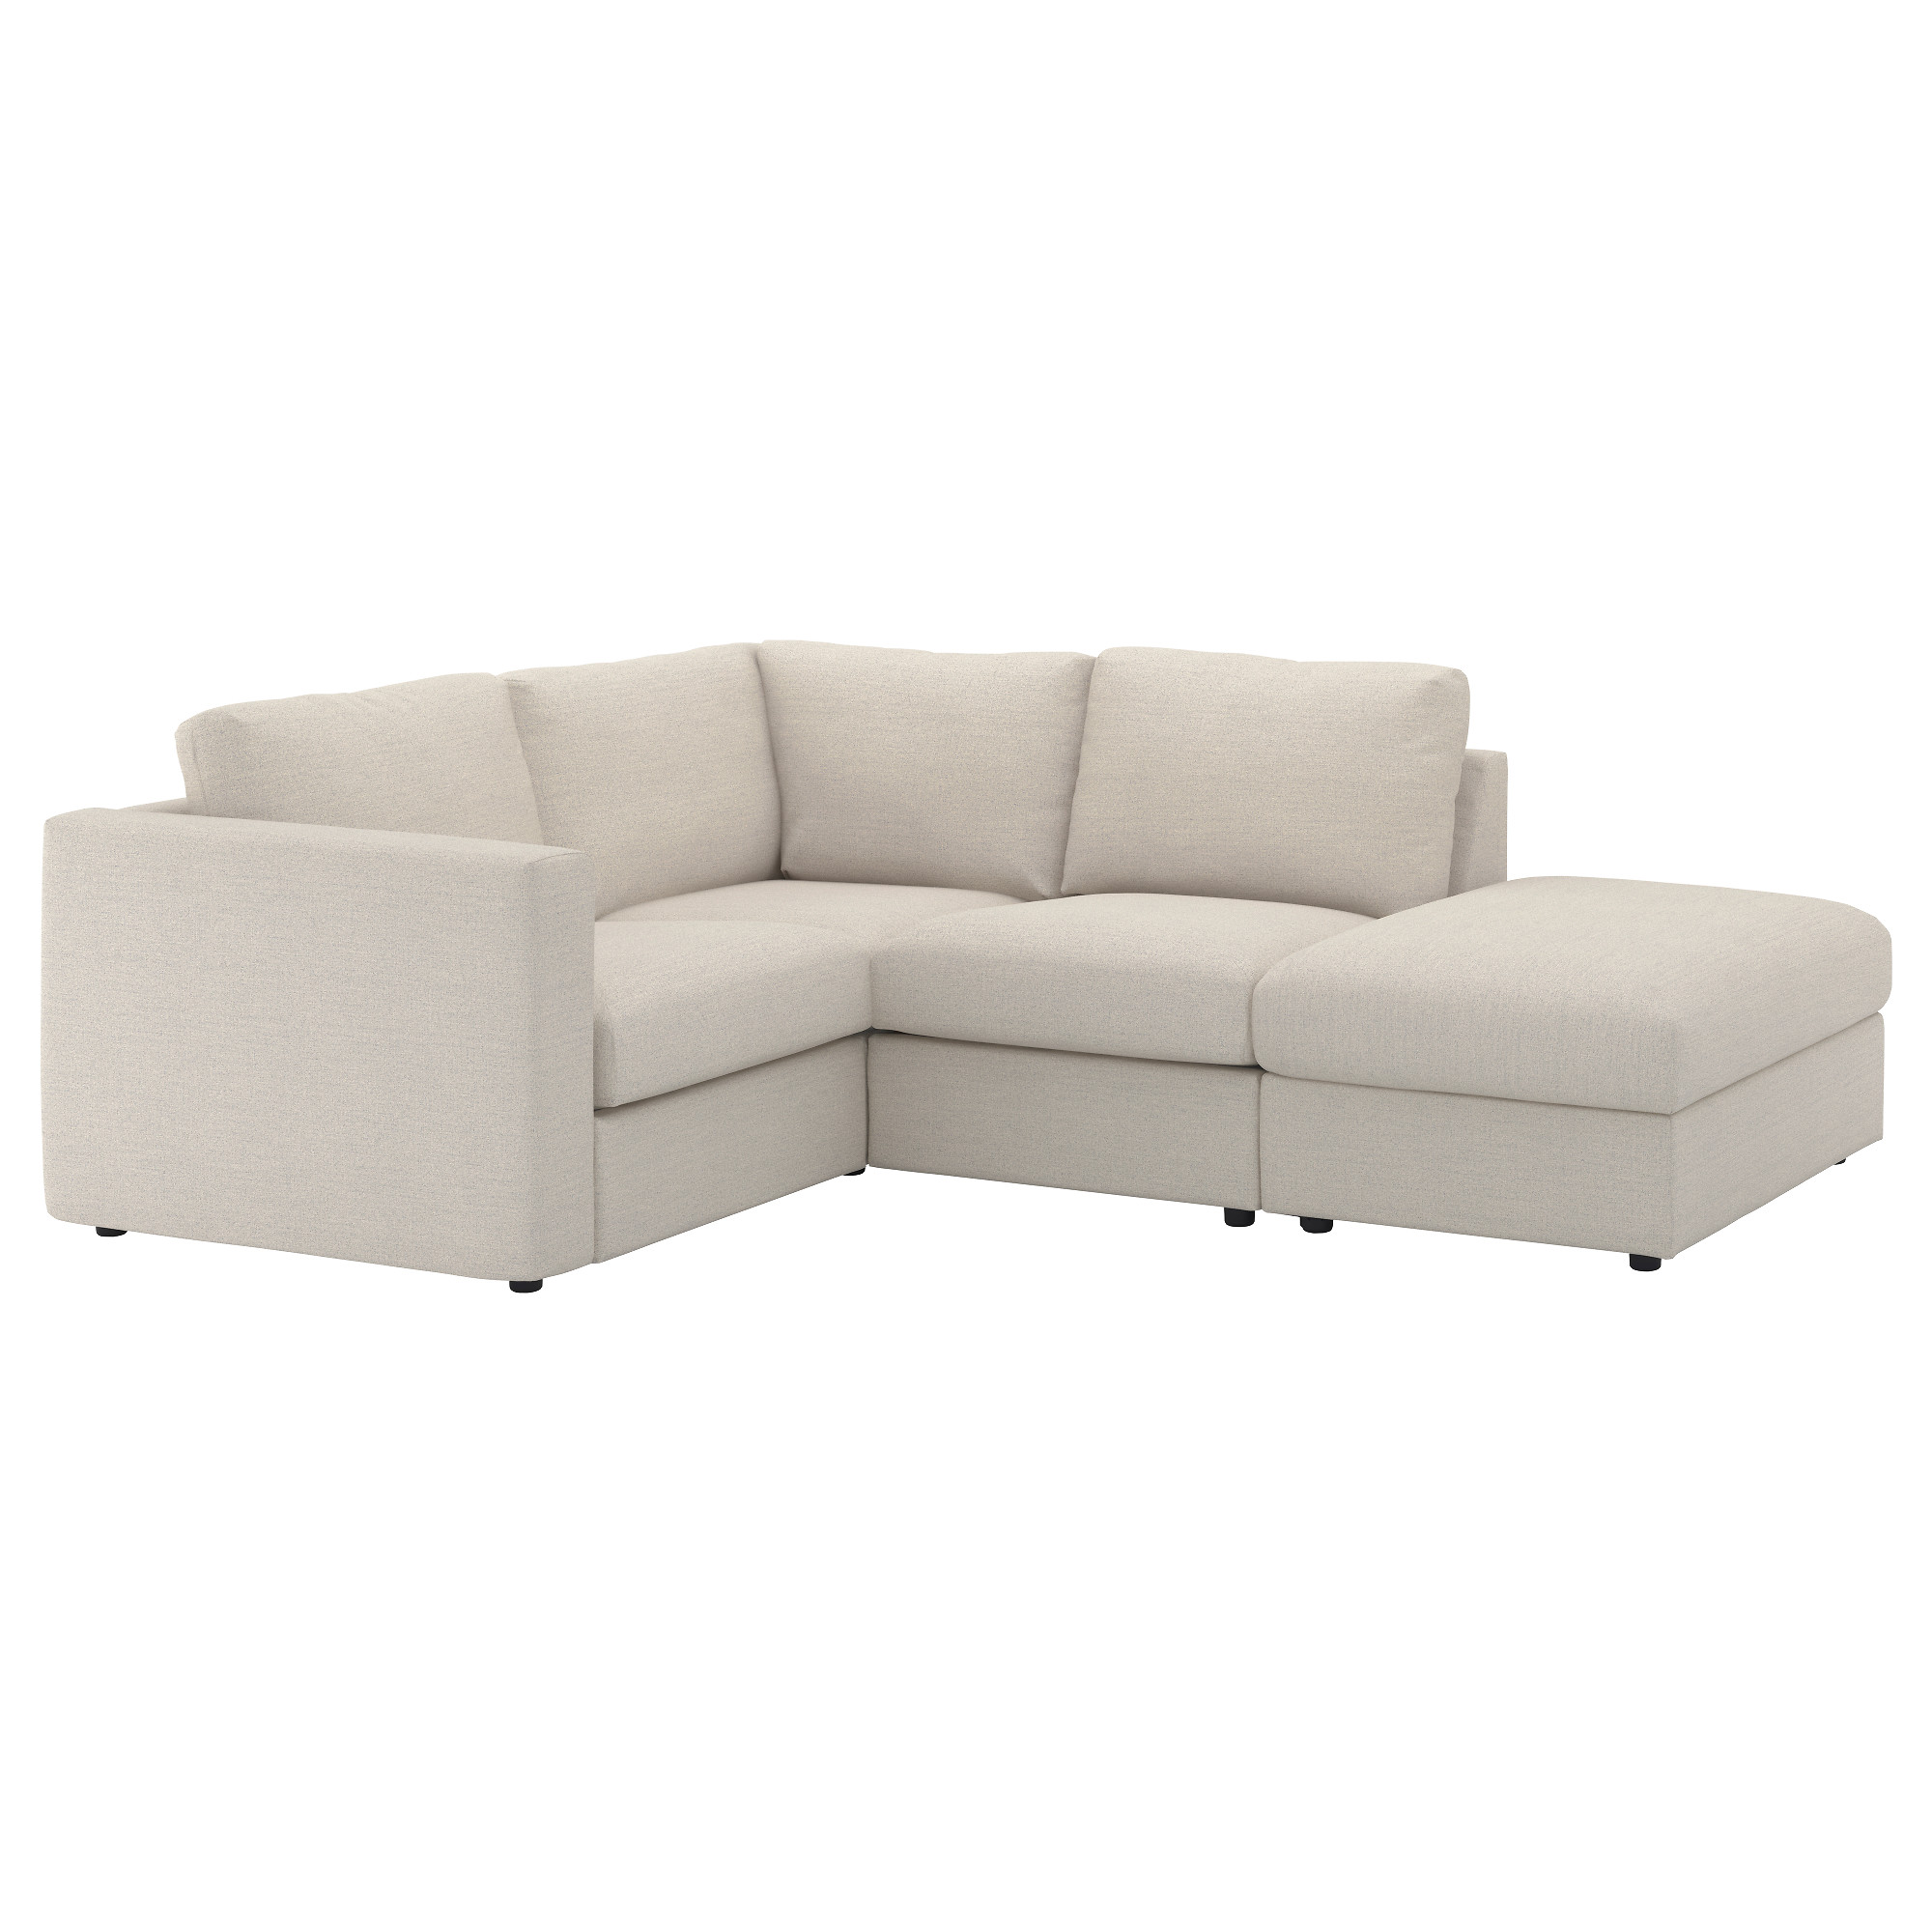 vimle sectional 3seat corner with open end gunnared beige height including